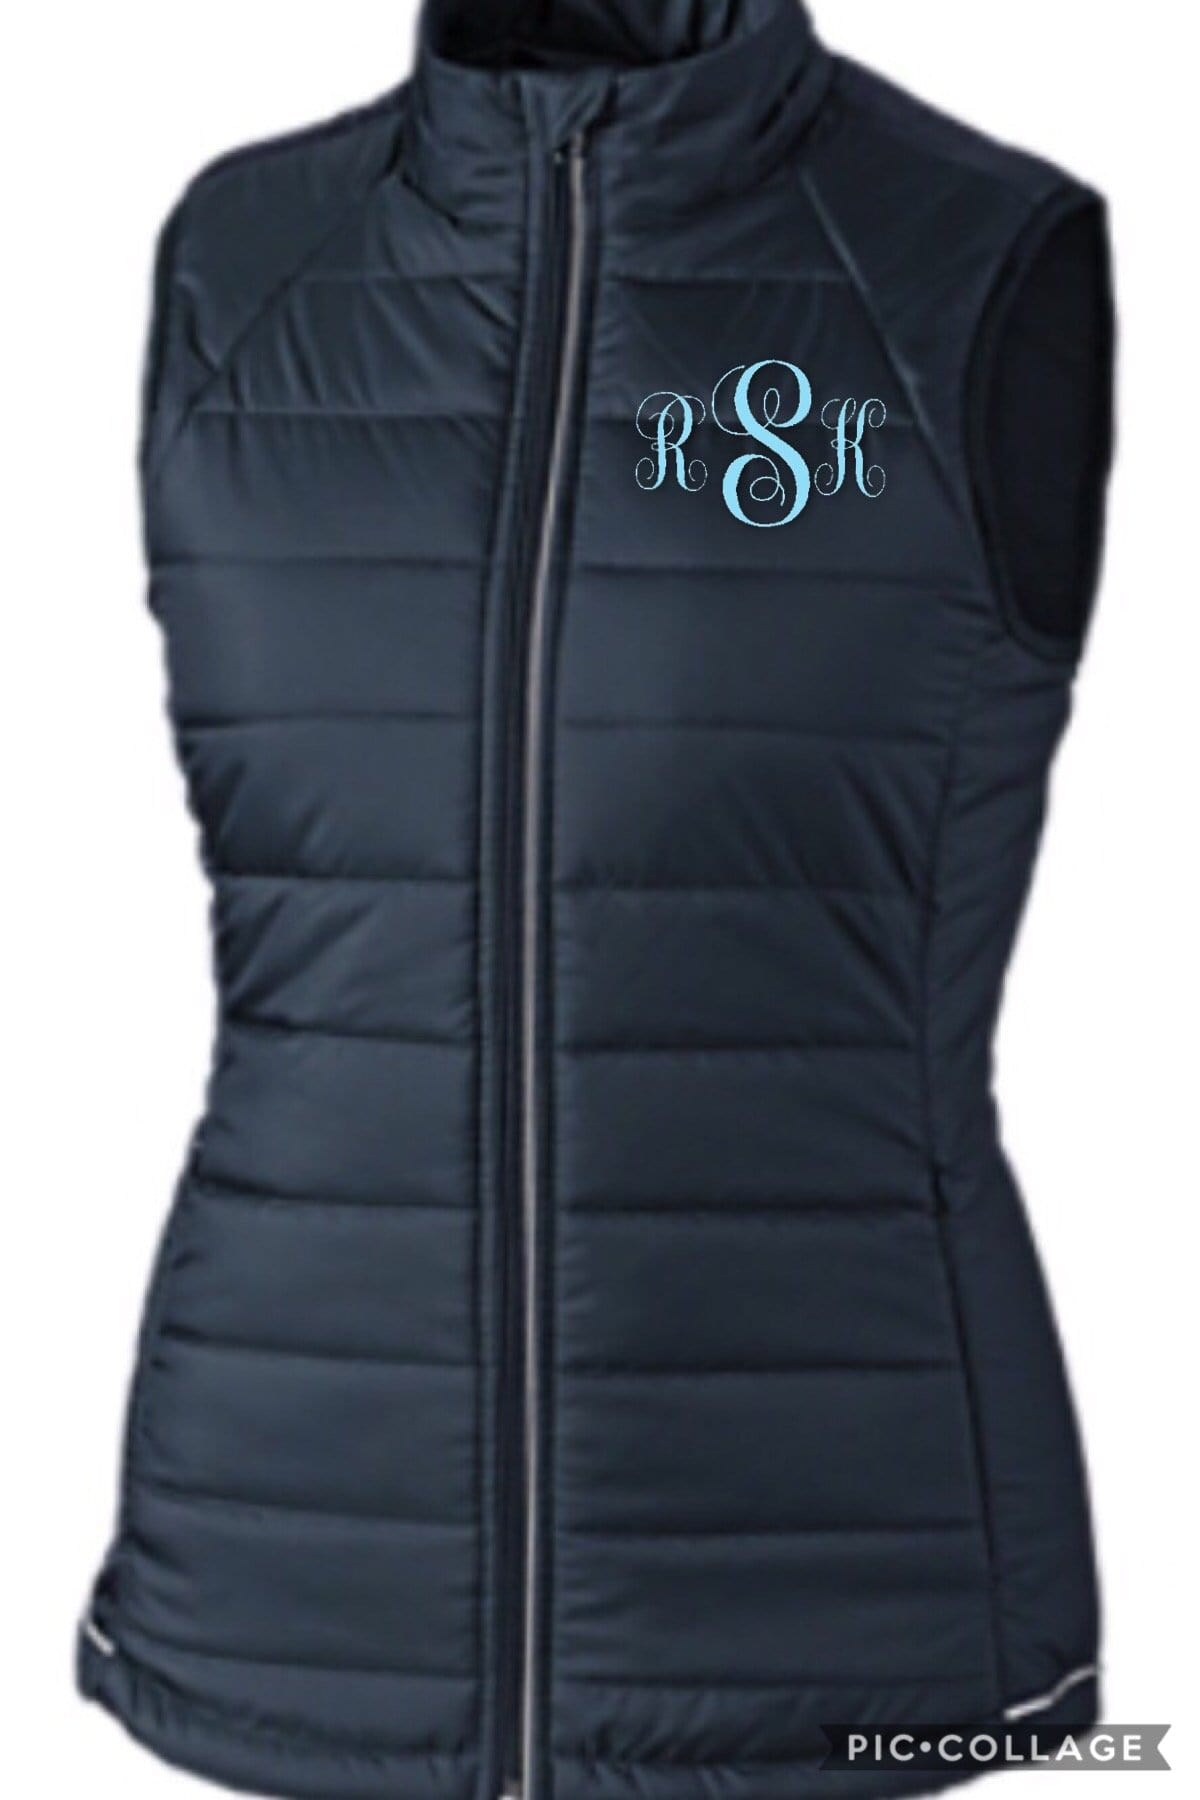 Equestrian Team Apparel Custom Team Jackets XS / Ladies Maplecrest Farm Puffy Vest equestrian team apparel online tack store mobile tack store custom farm apparel custom show stable clothing equestrian lifestyle horse show clothing riding clothes horses equestrian tack store